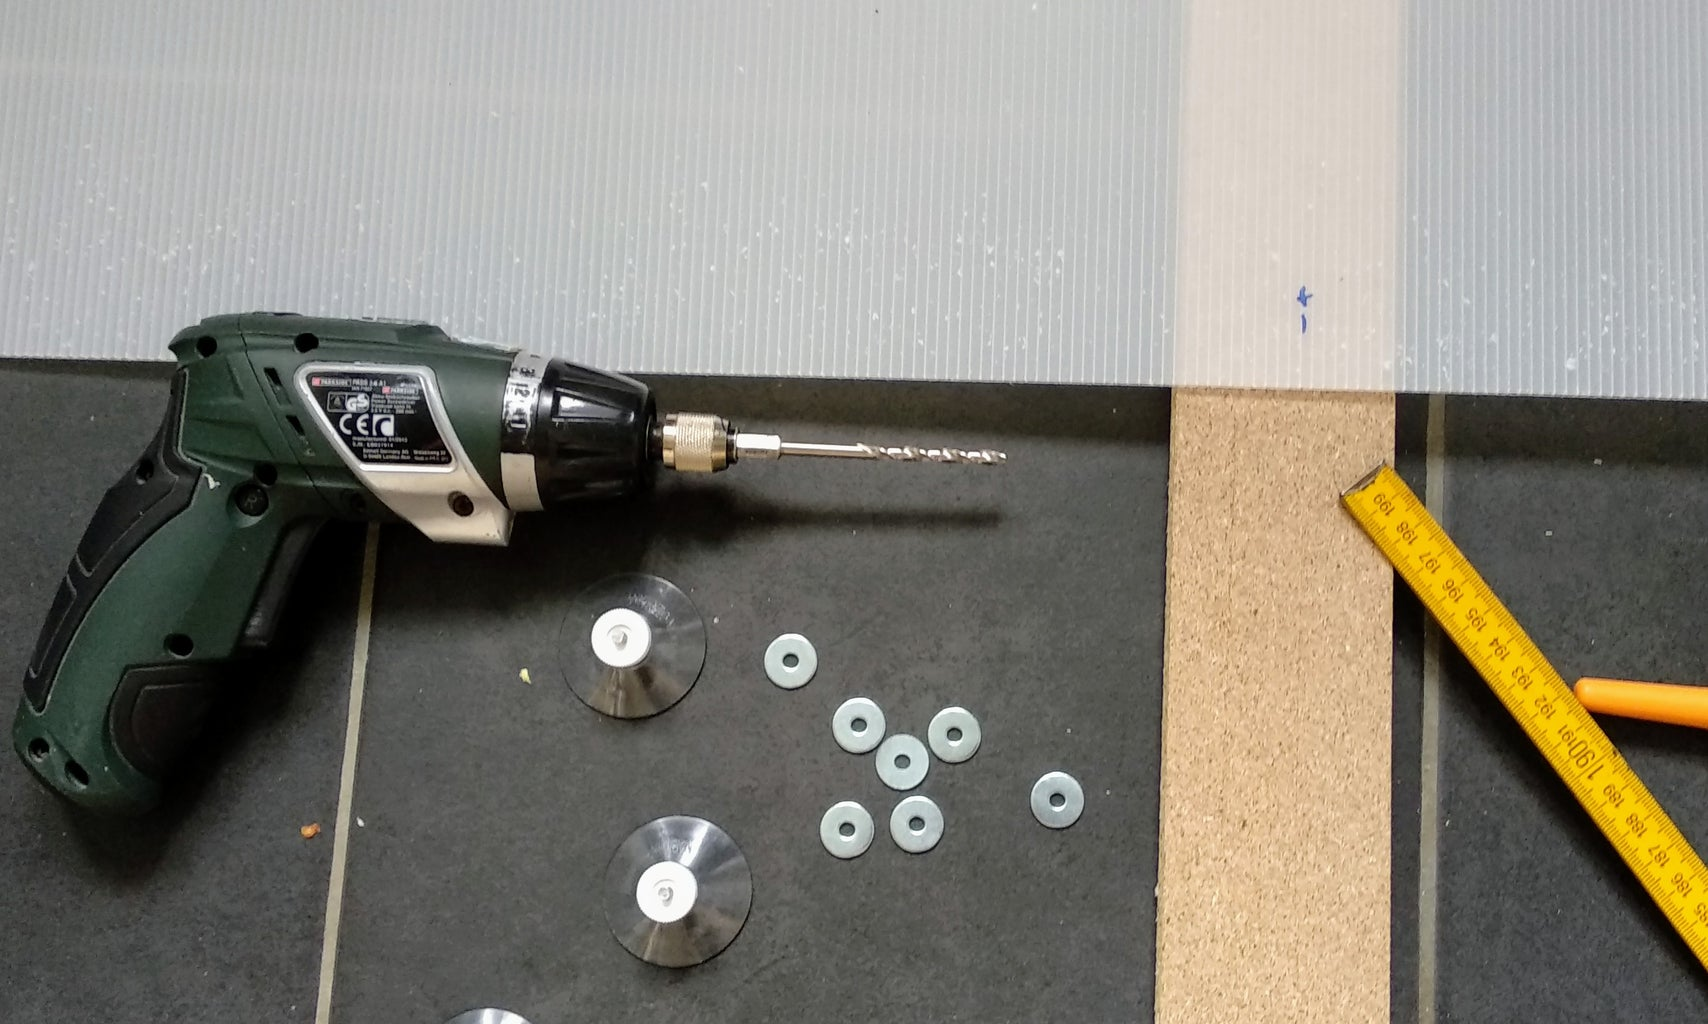 Preparation and Assembly